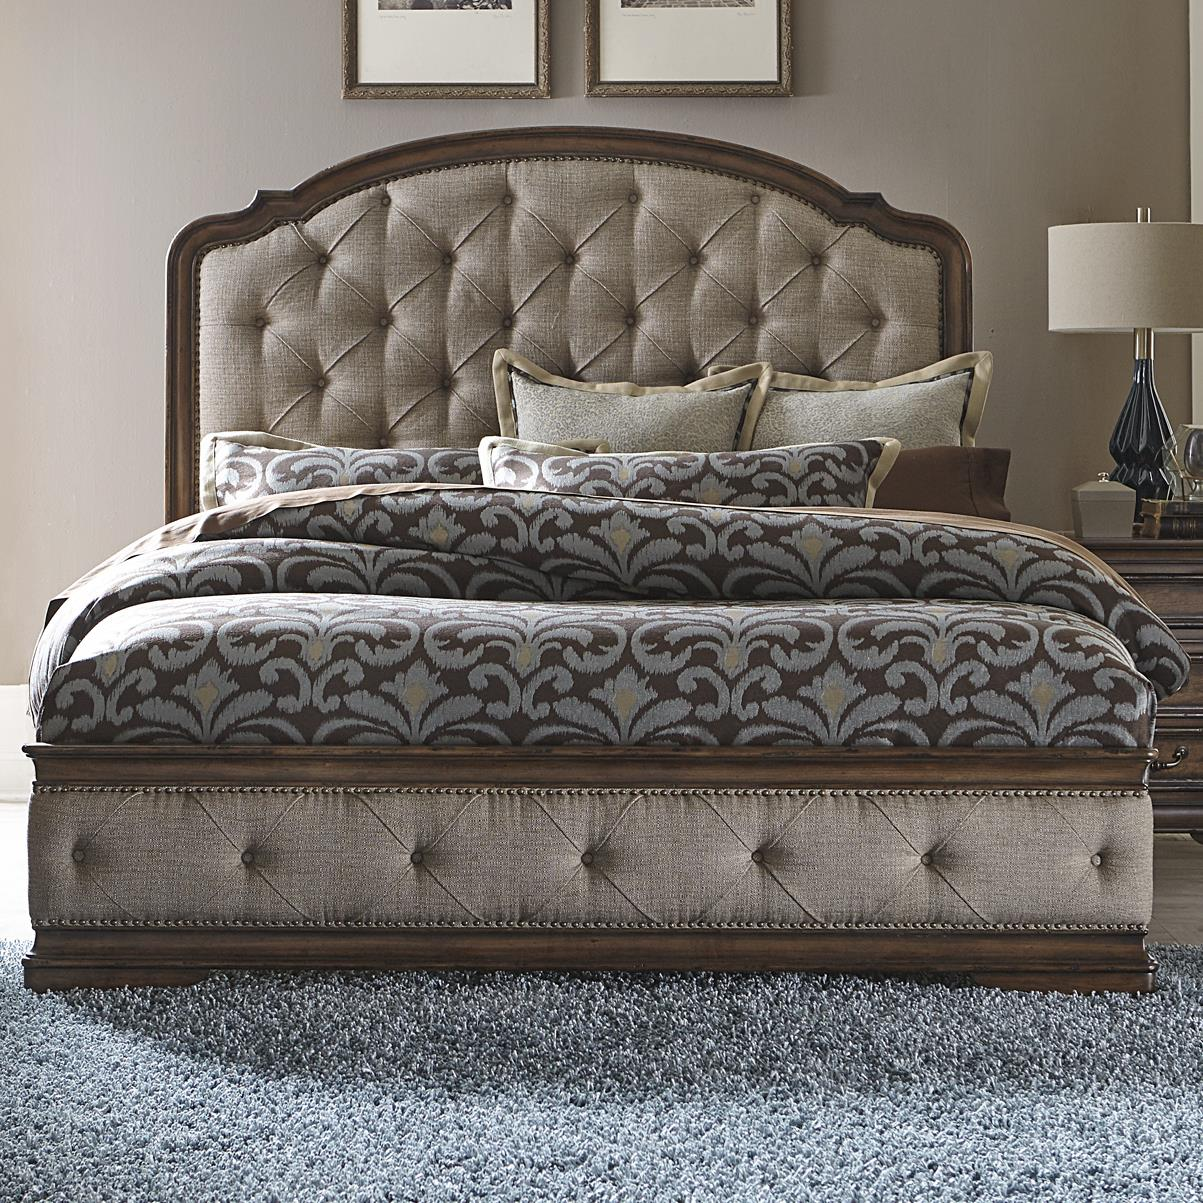 upholstered bedroom set vendor 5349 amelia 487 br kub traditional king upholstered 13697